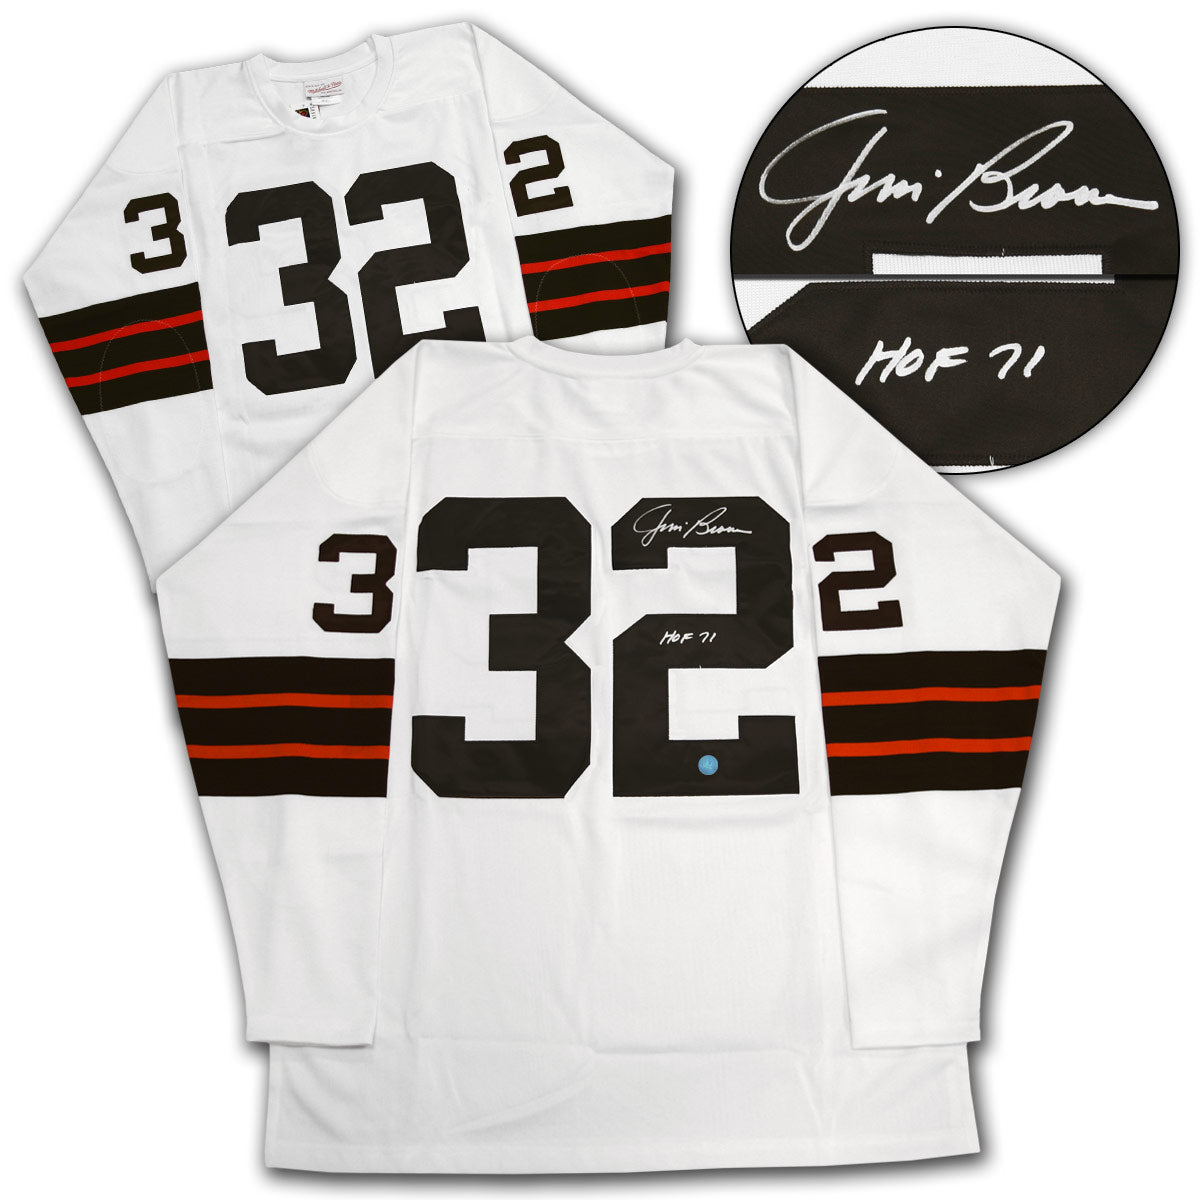 the best attitude 281ae abf56 Jim Brown Cleveland Browns Autographed Mitchell & Ness Football Jersey